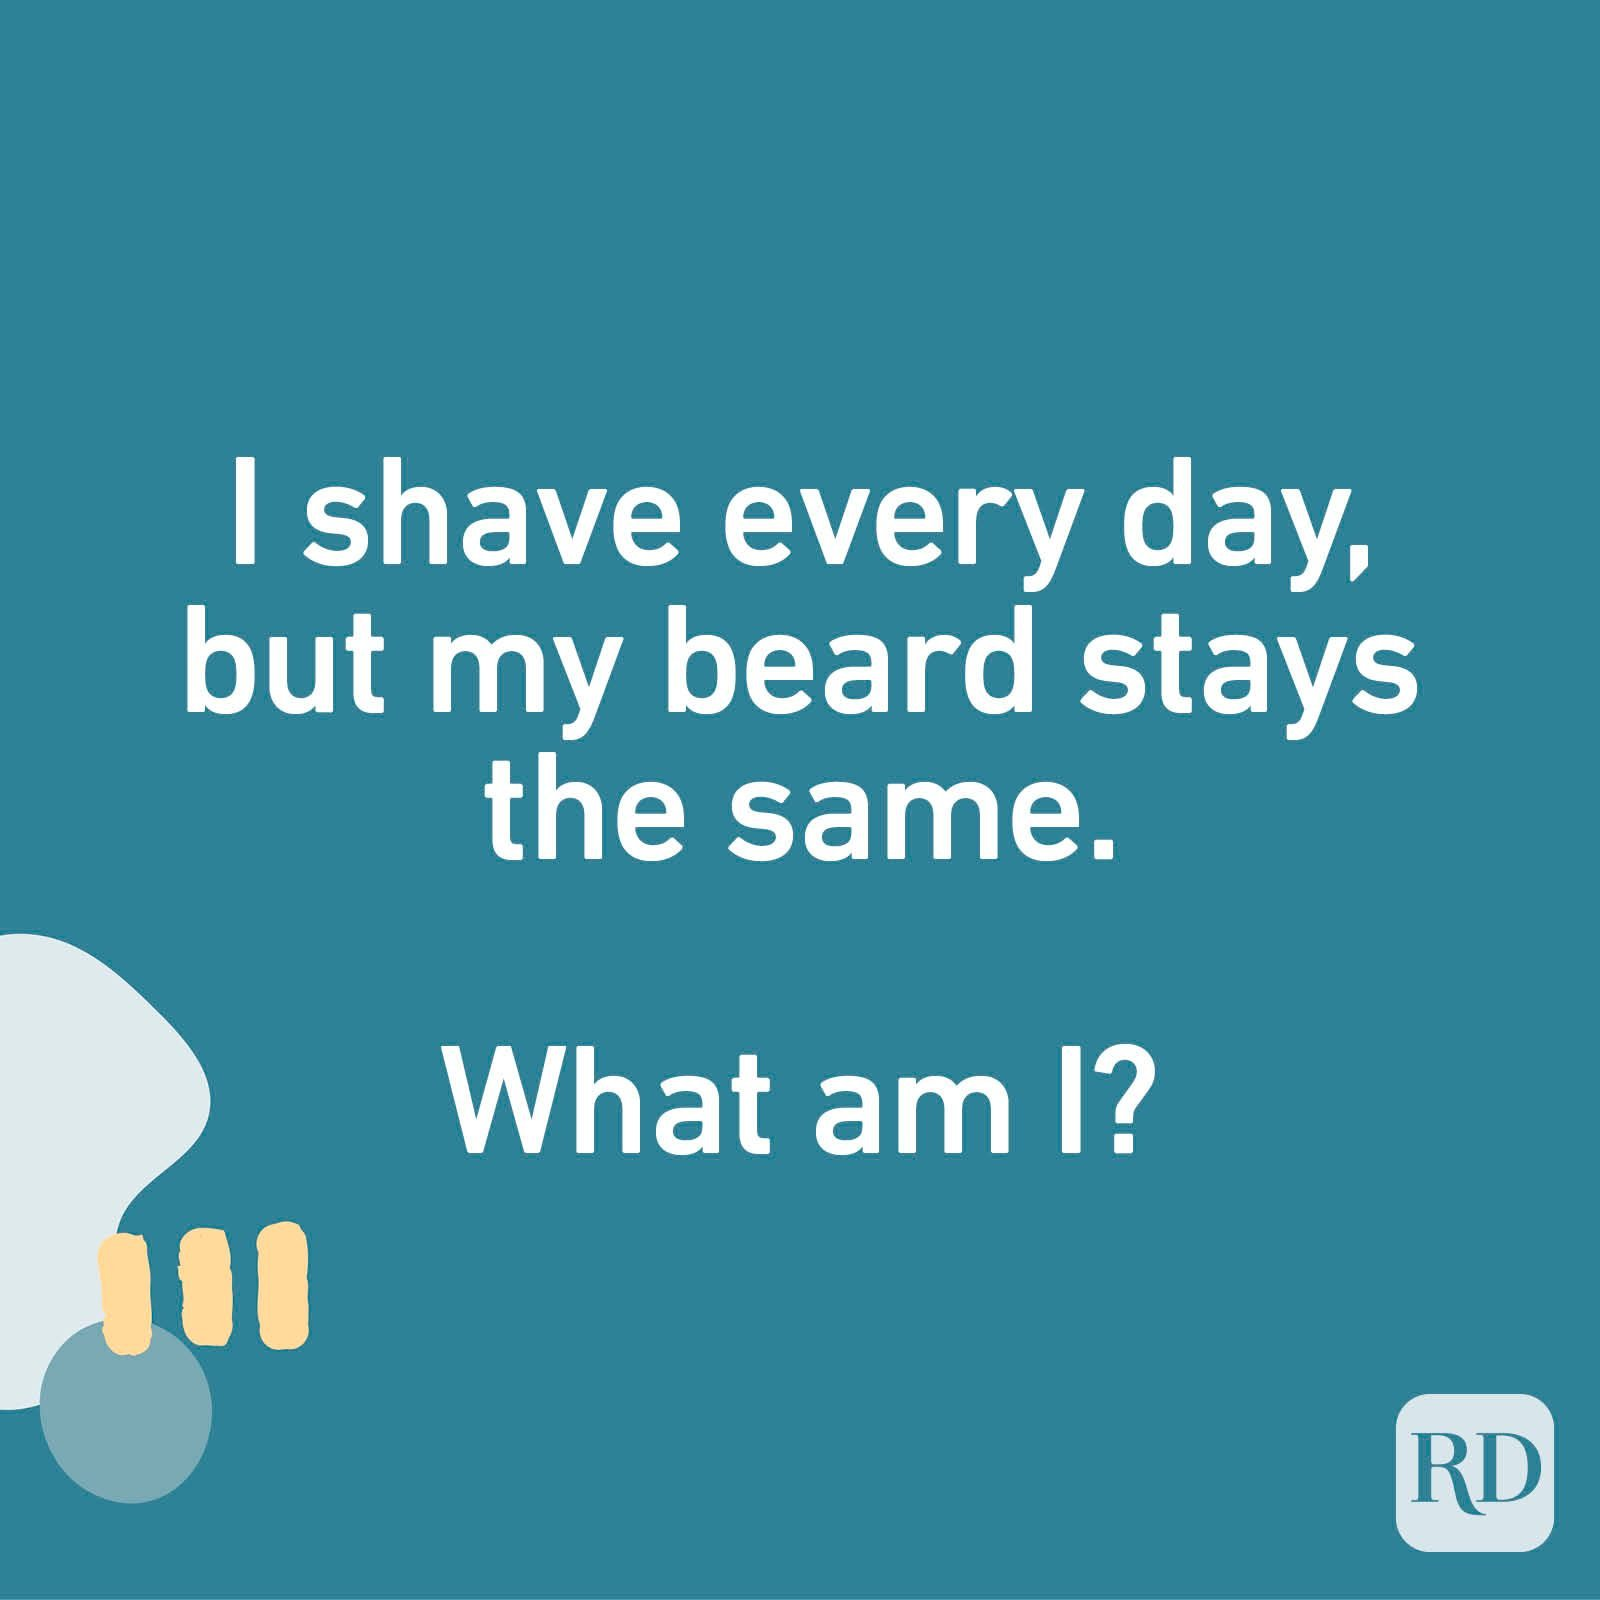 I shave every day, but my beard stays the same. What am I?